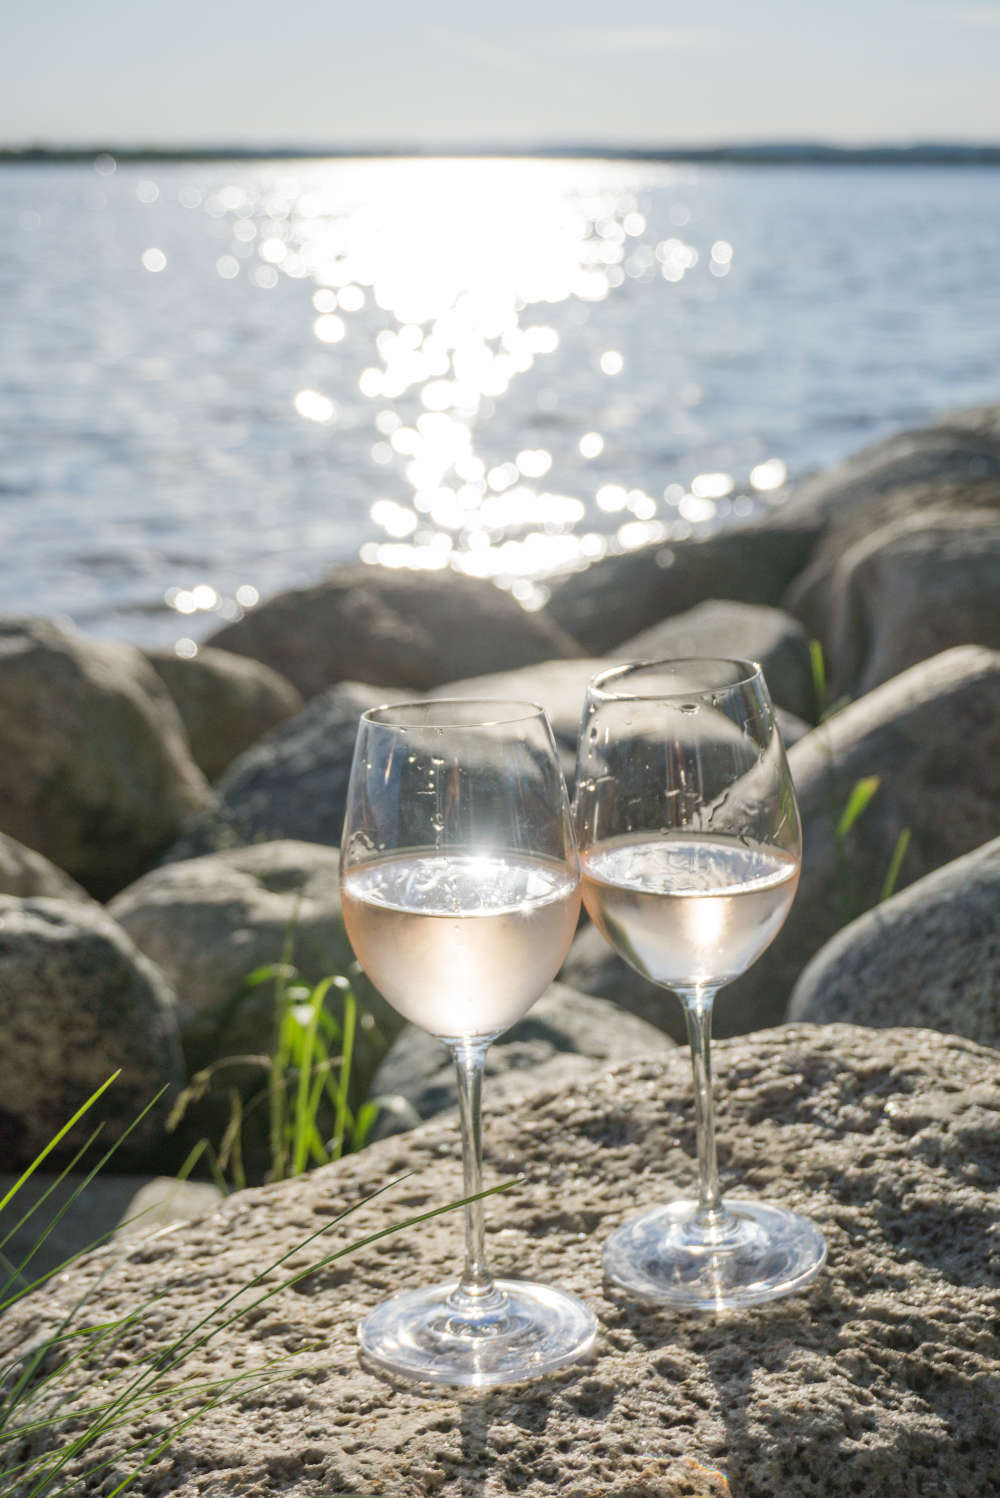 Two glasses of wine on rocks in front of Wellers Bay at The Empty Nest in Prince Edward County